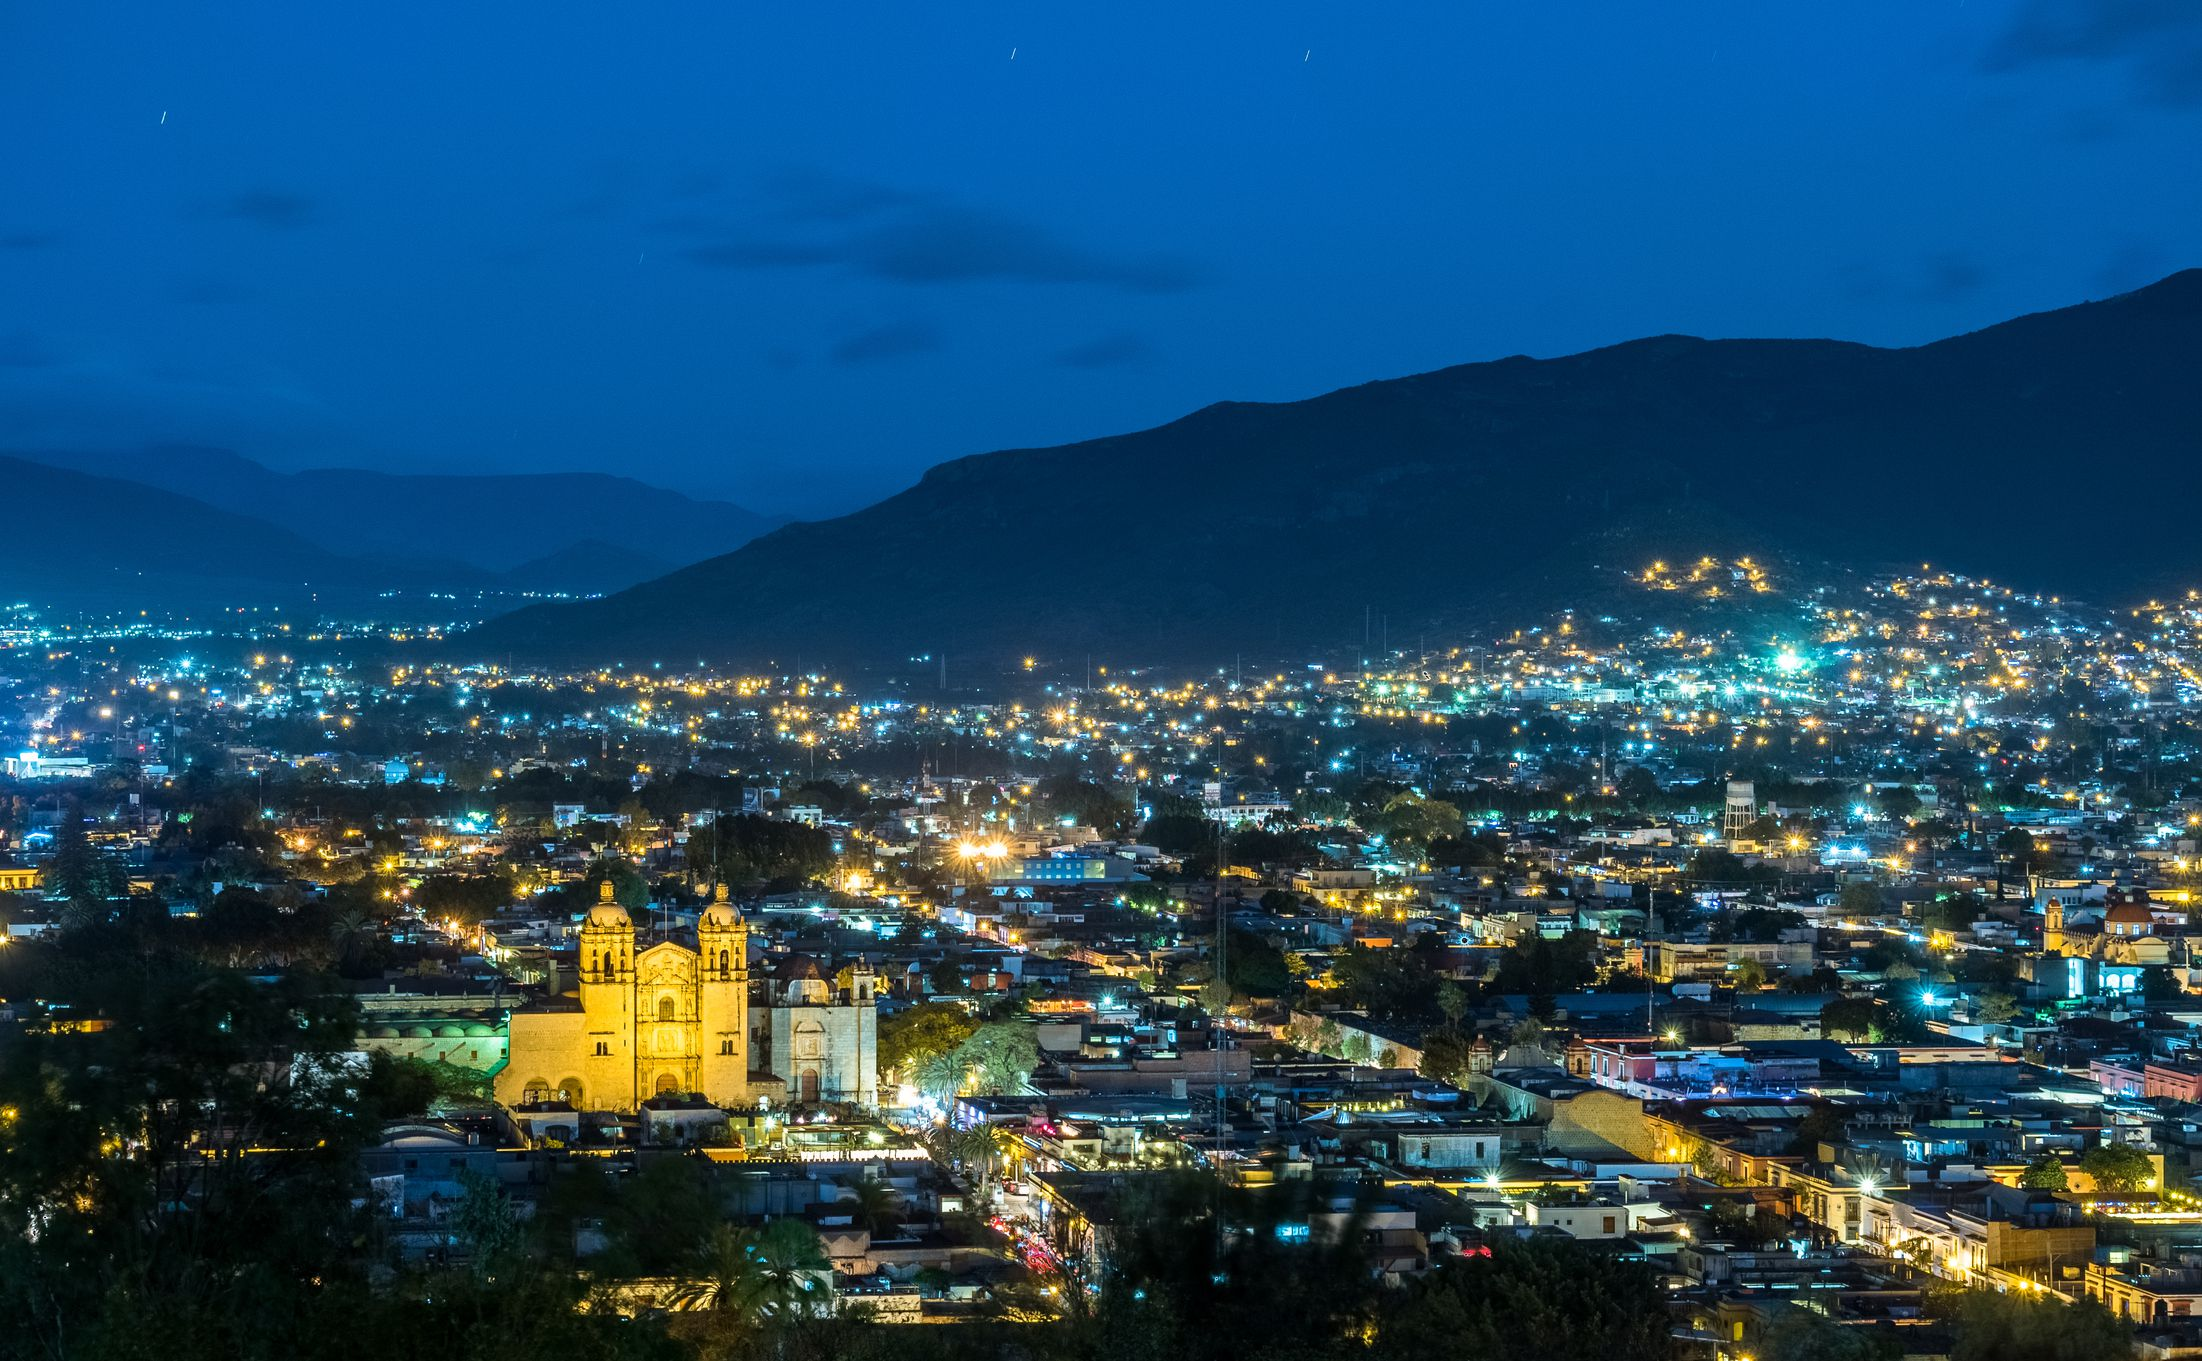 How To Get To Oaxaca From Mexico City